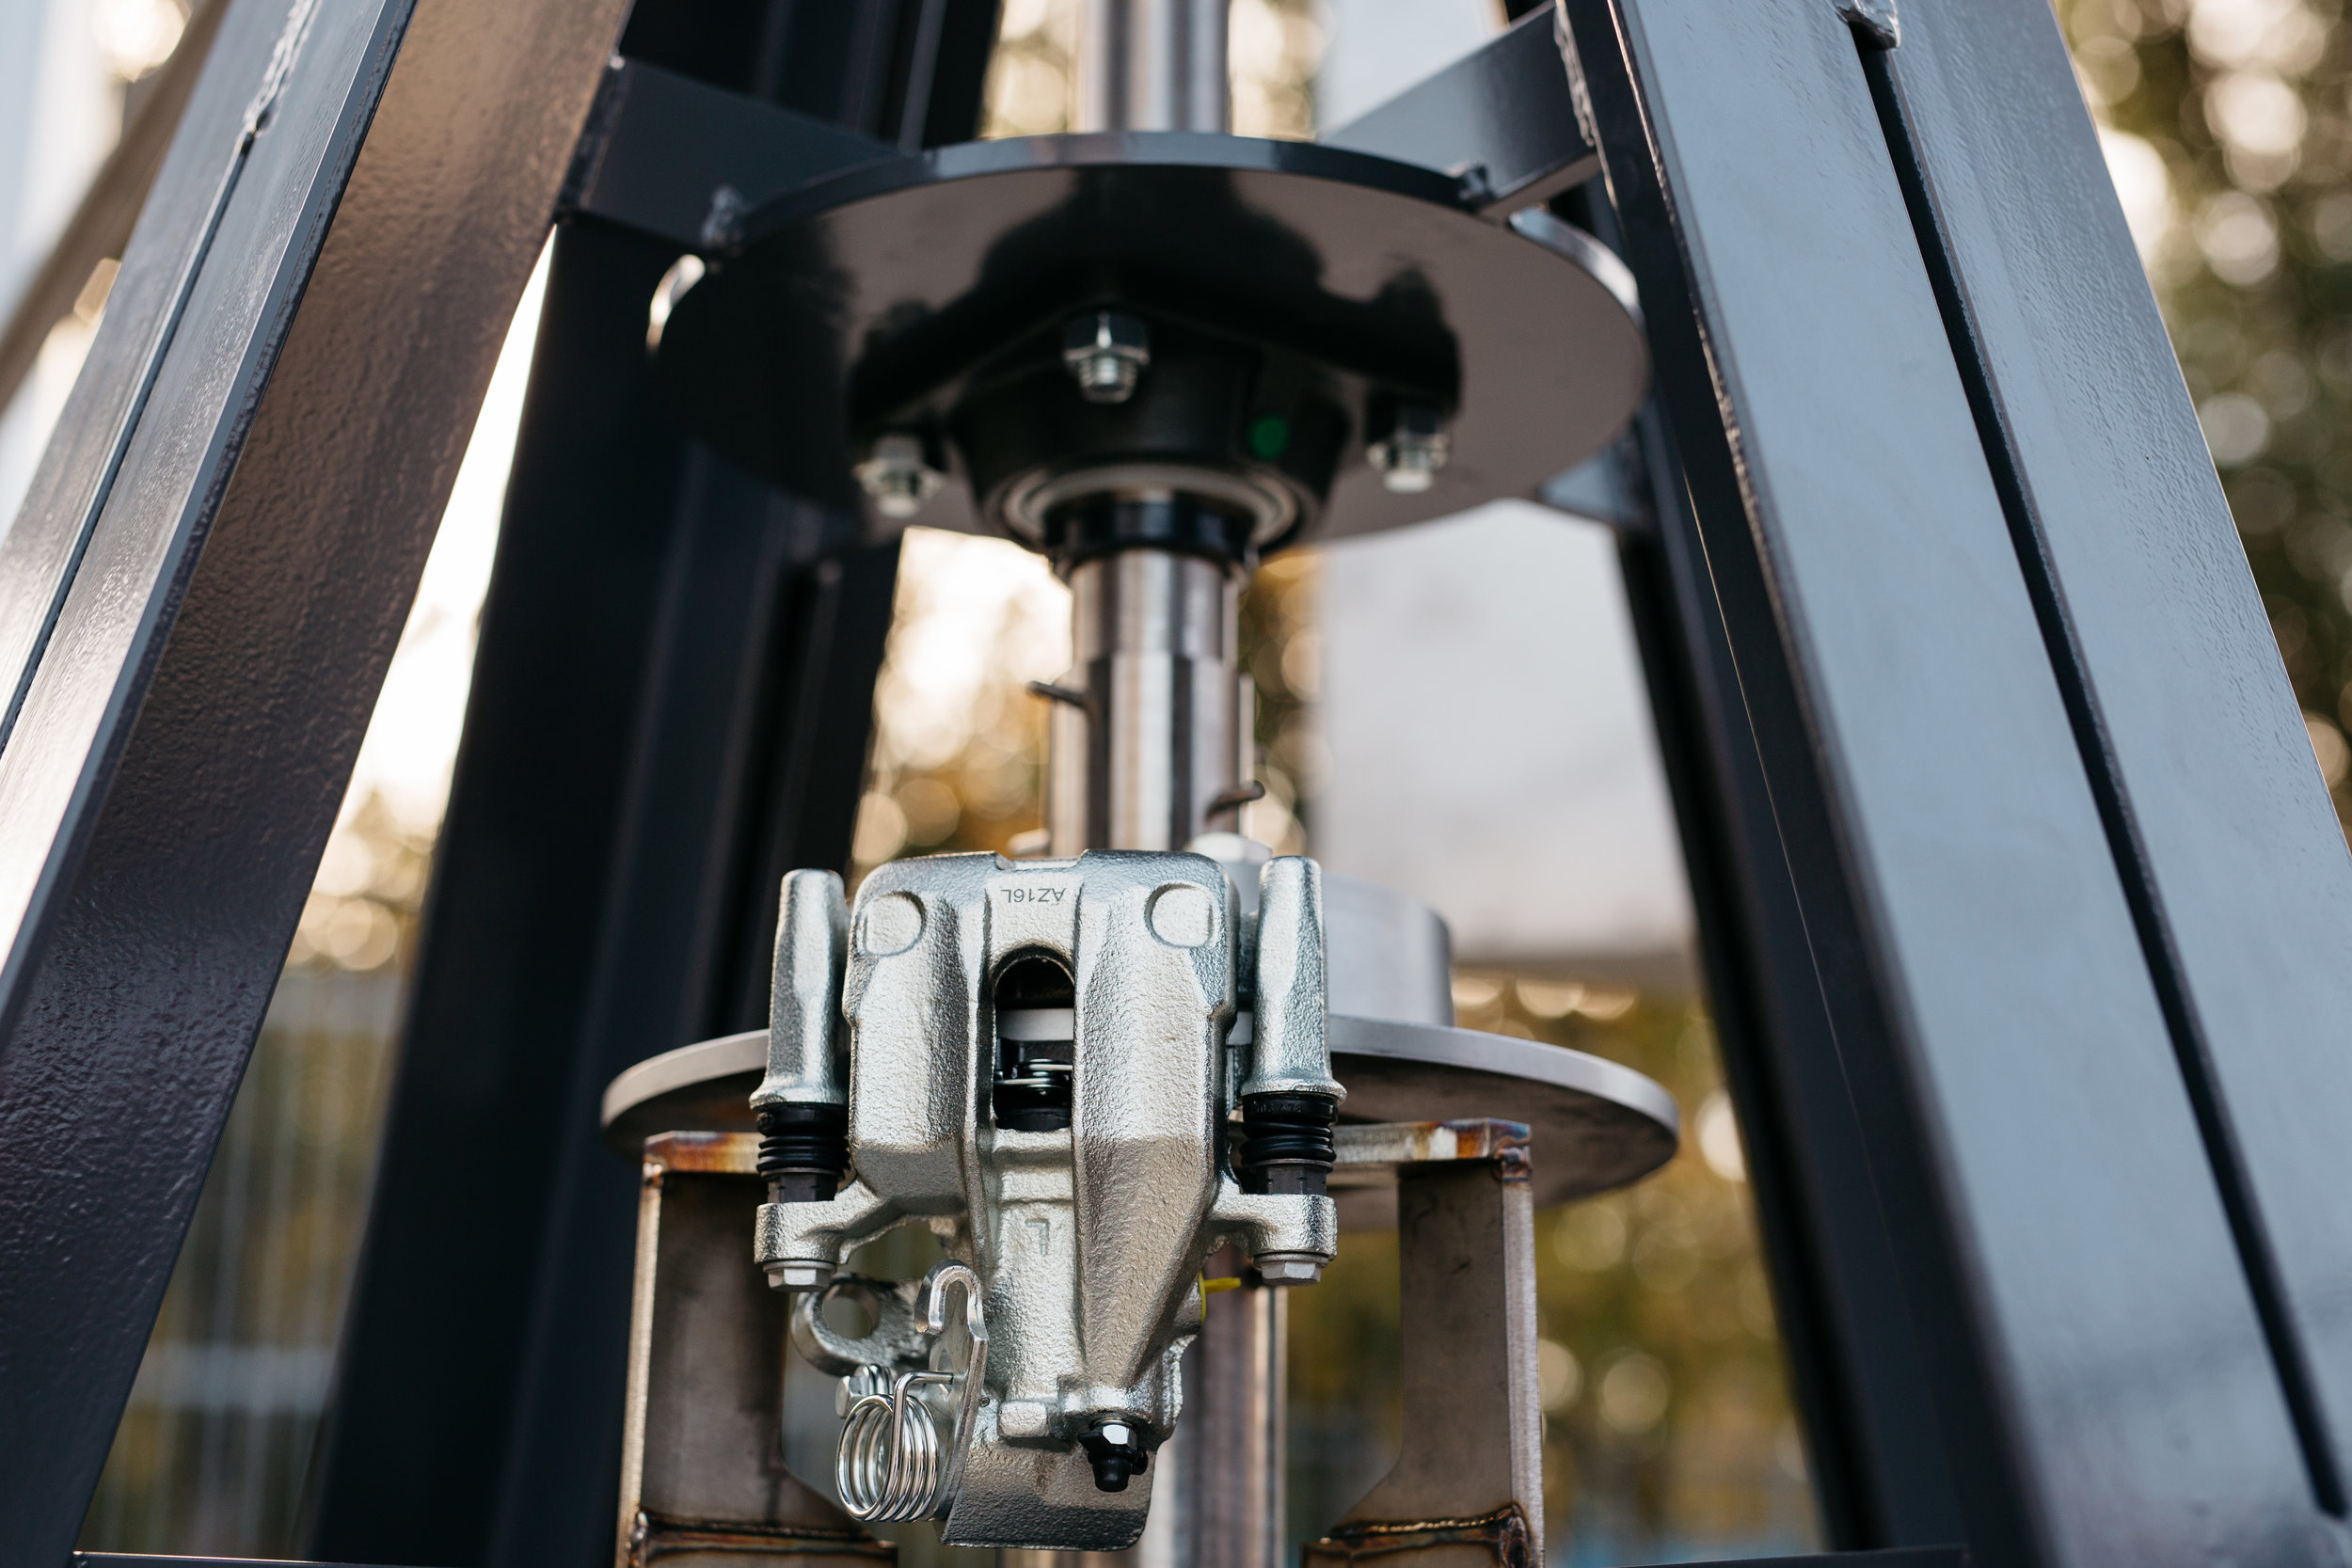 The safety brake.  When installing or adjusting, the rotor has to be stopped.